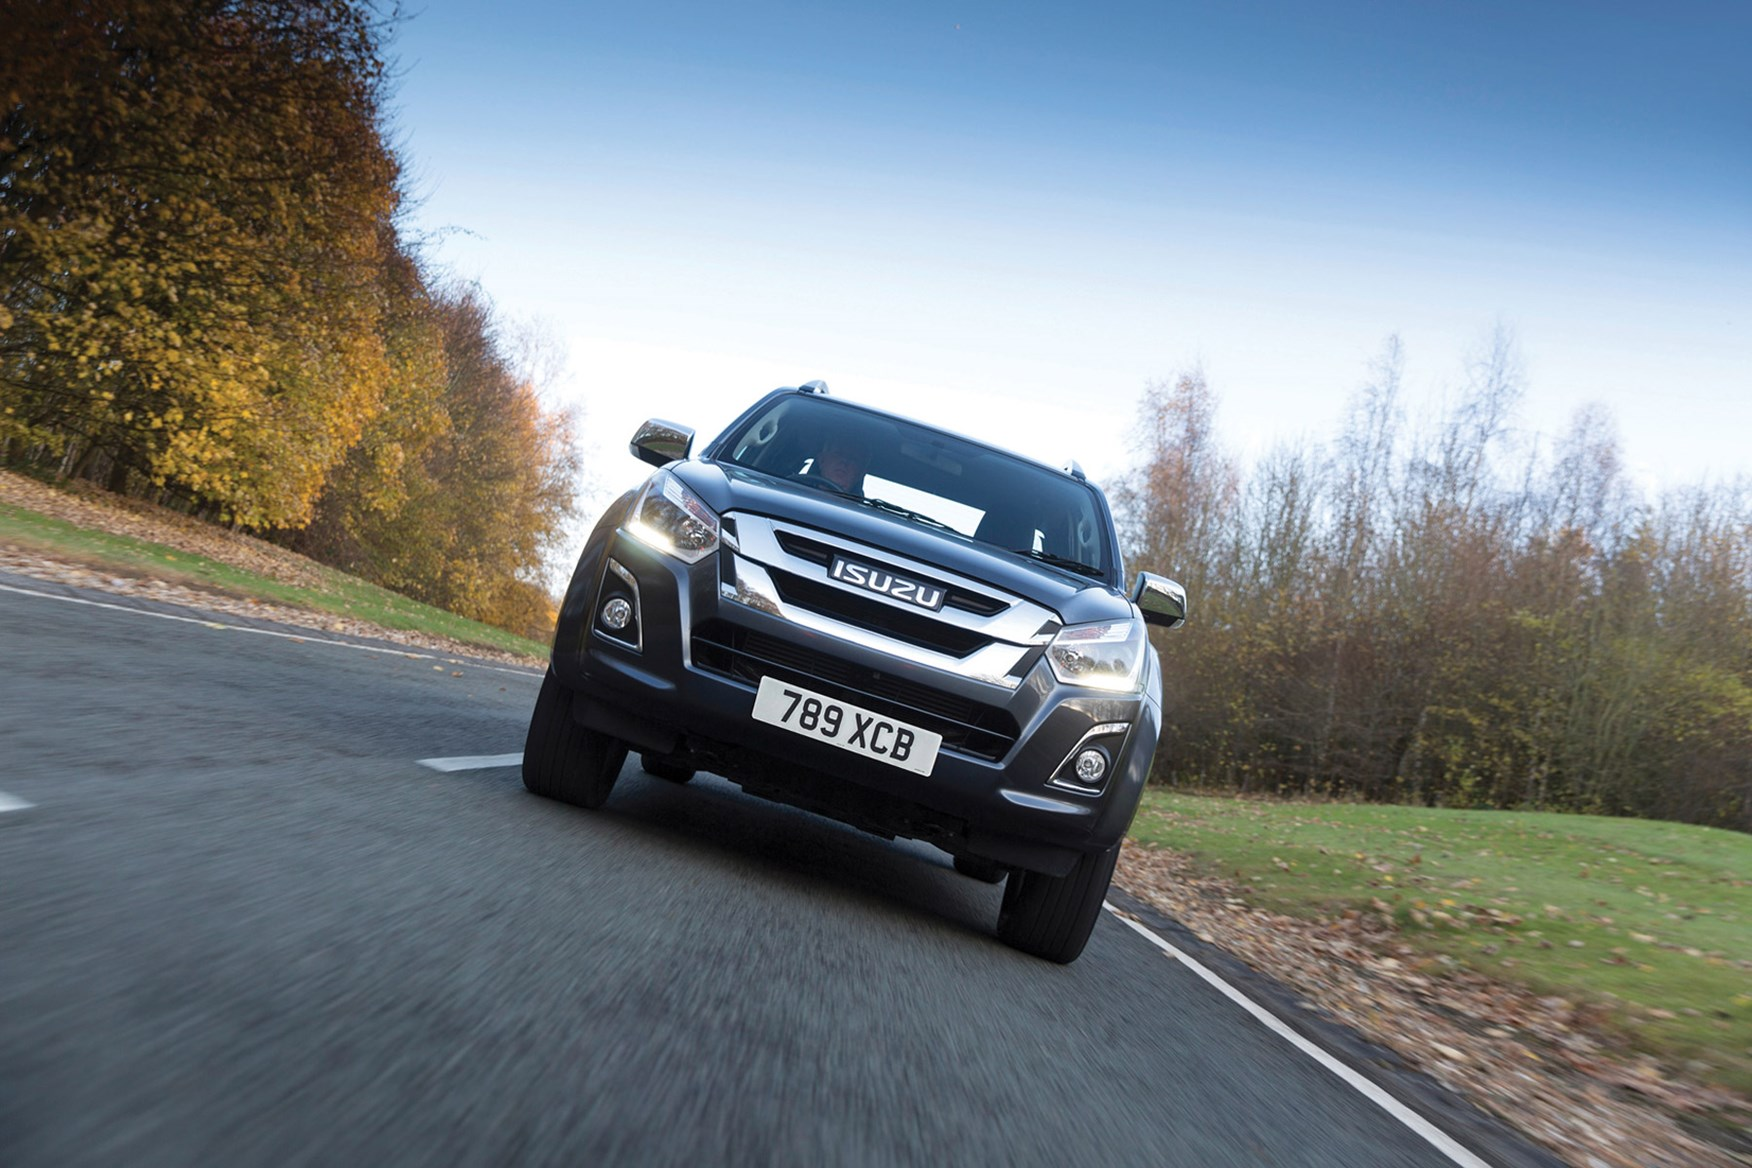 Isuzu D-Max full review on Parkers Vans - front